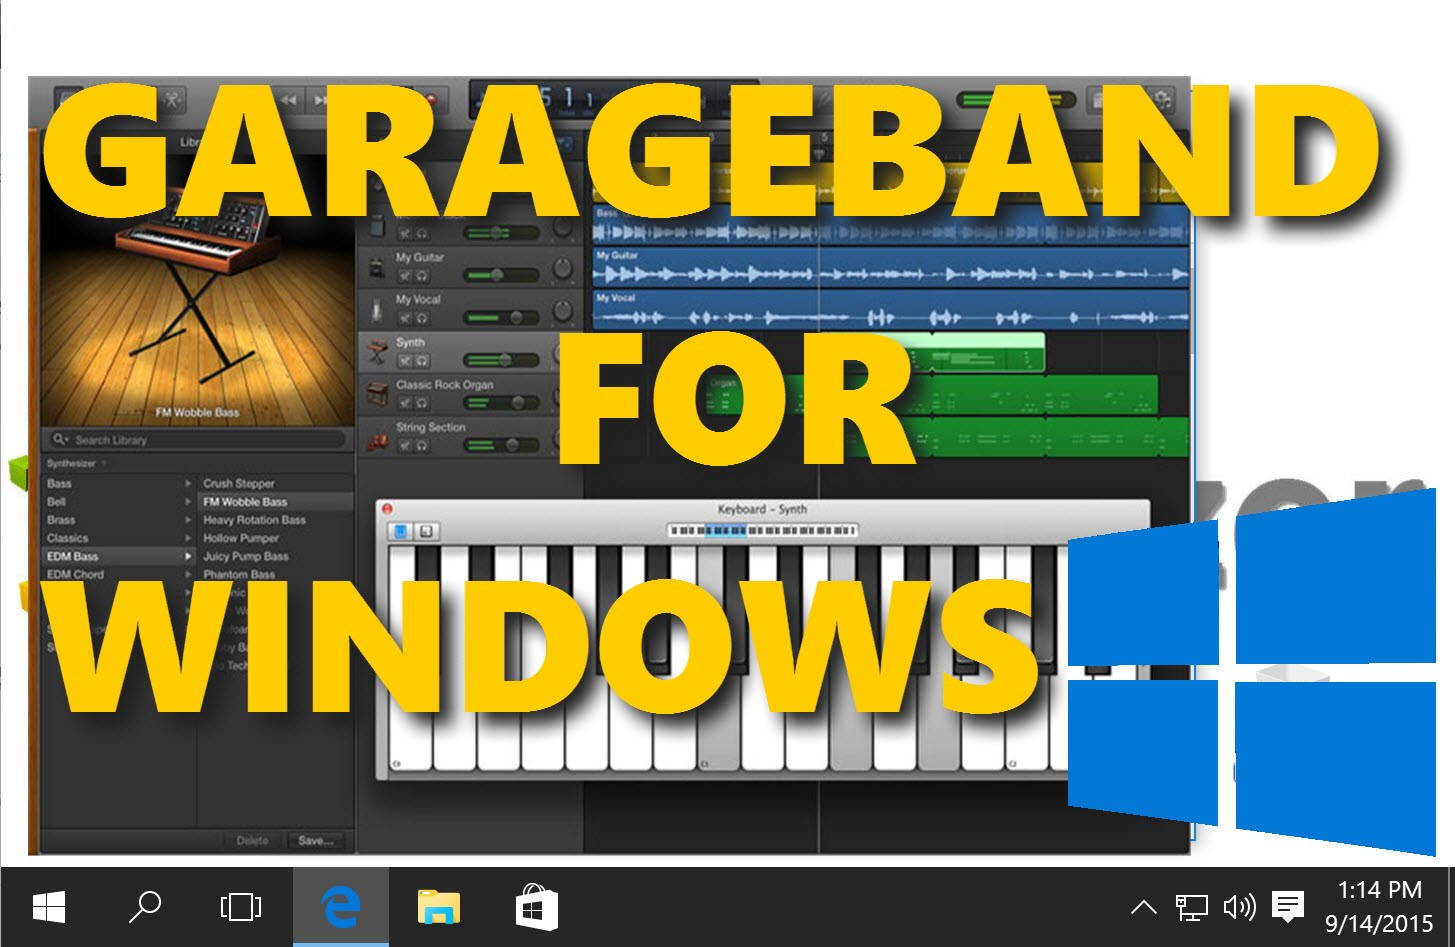 Here is the Best Method to Use Garrageband for Windows